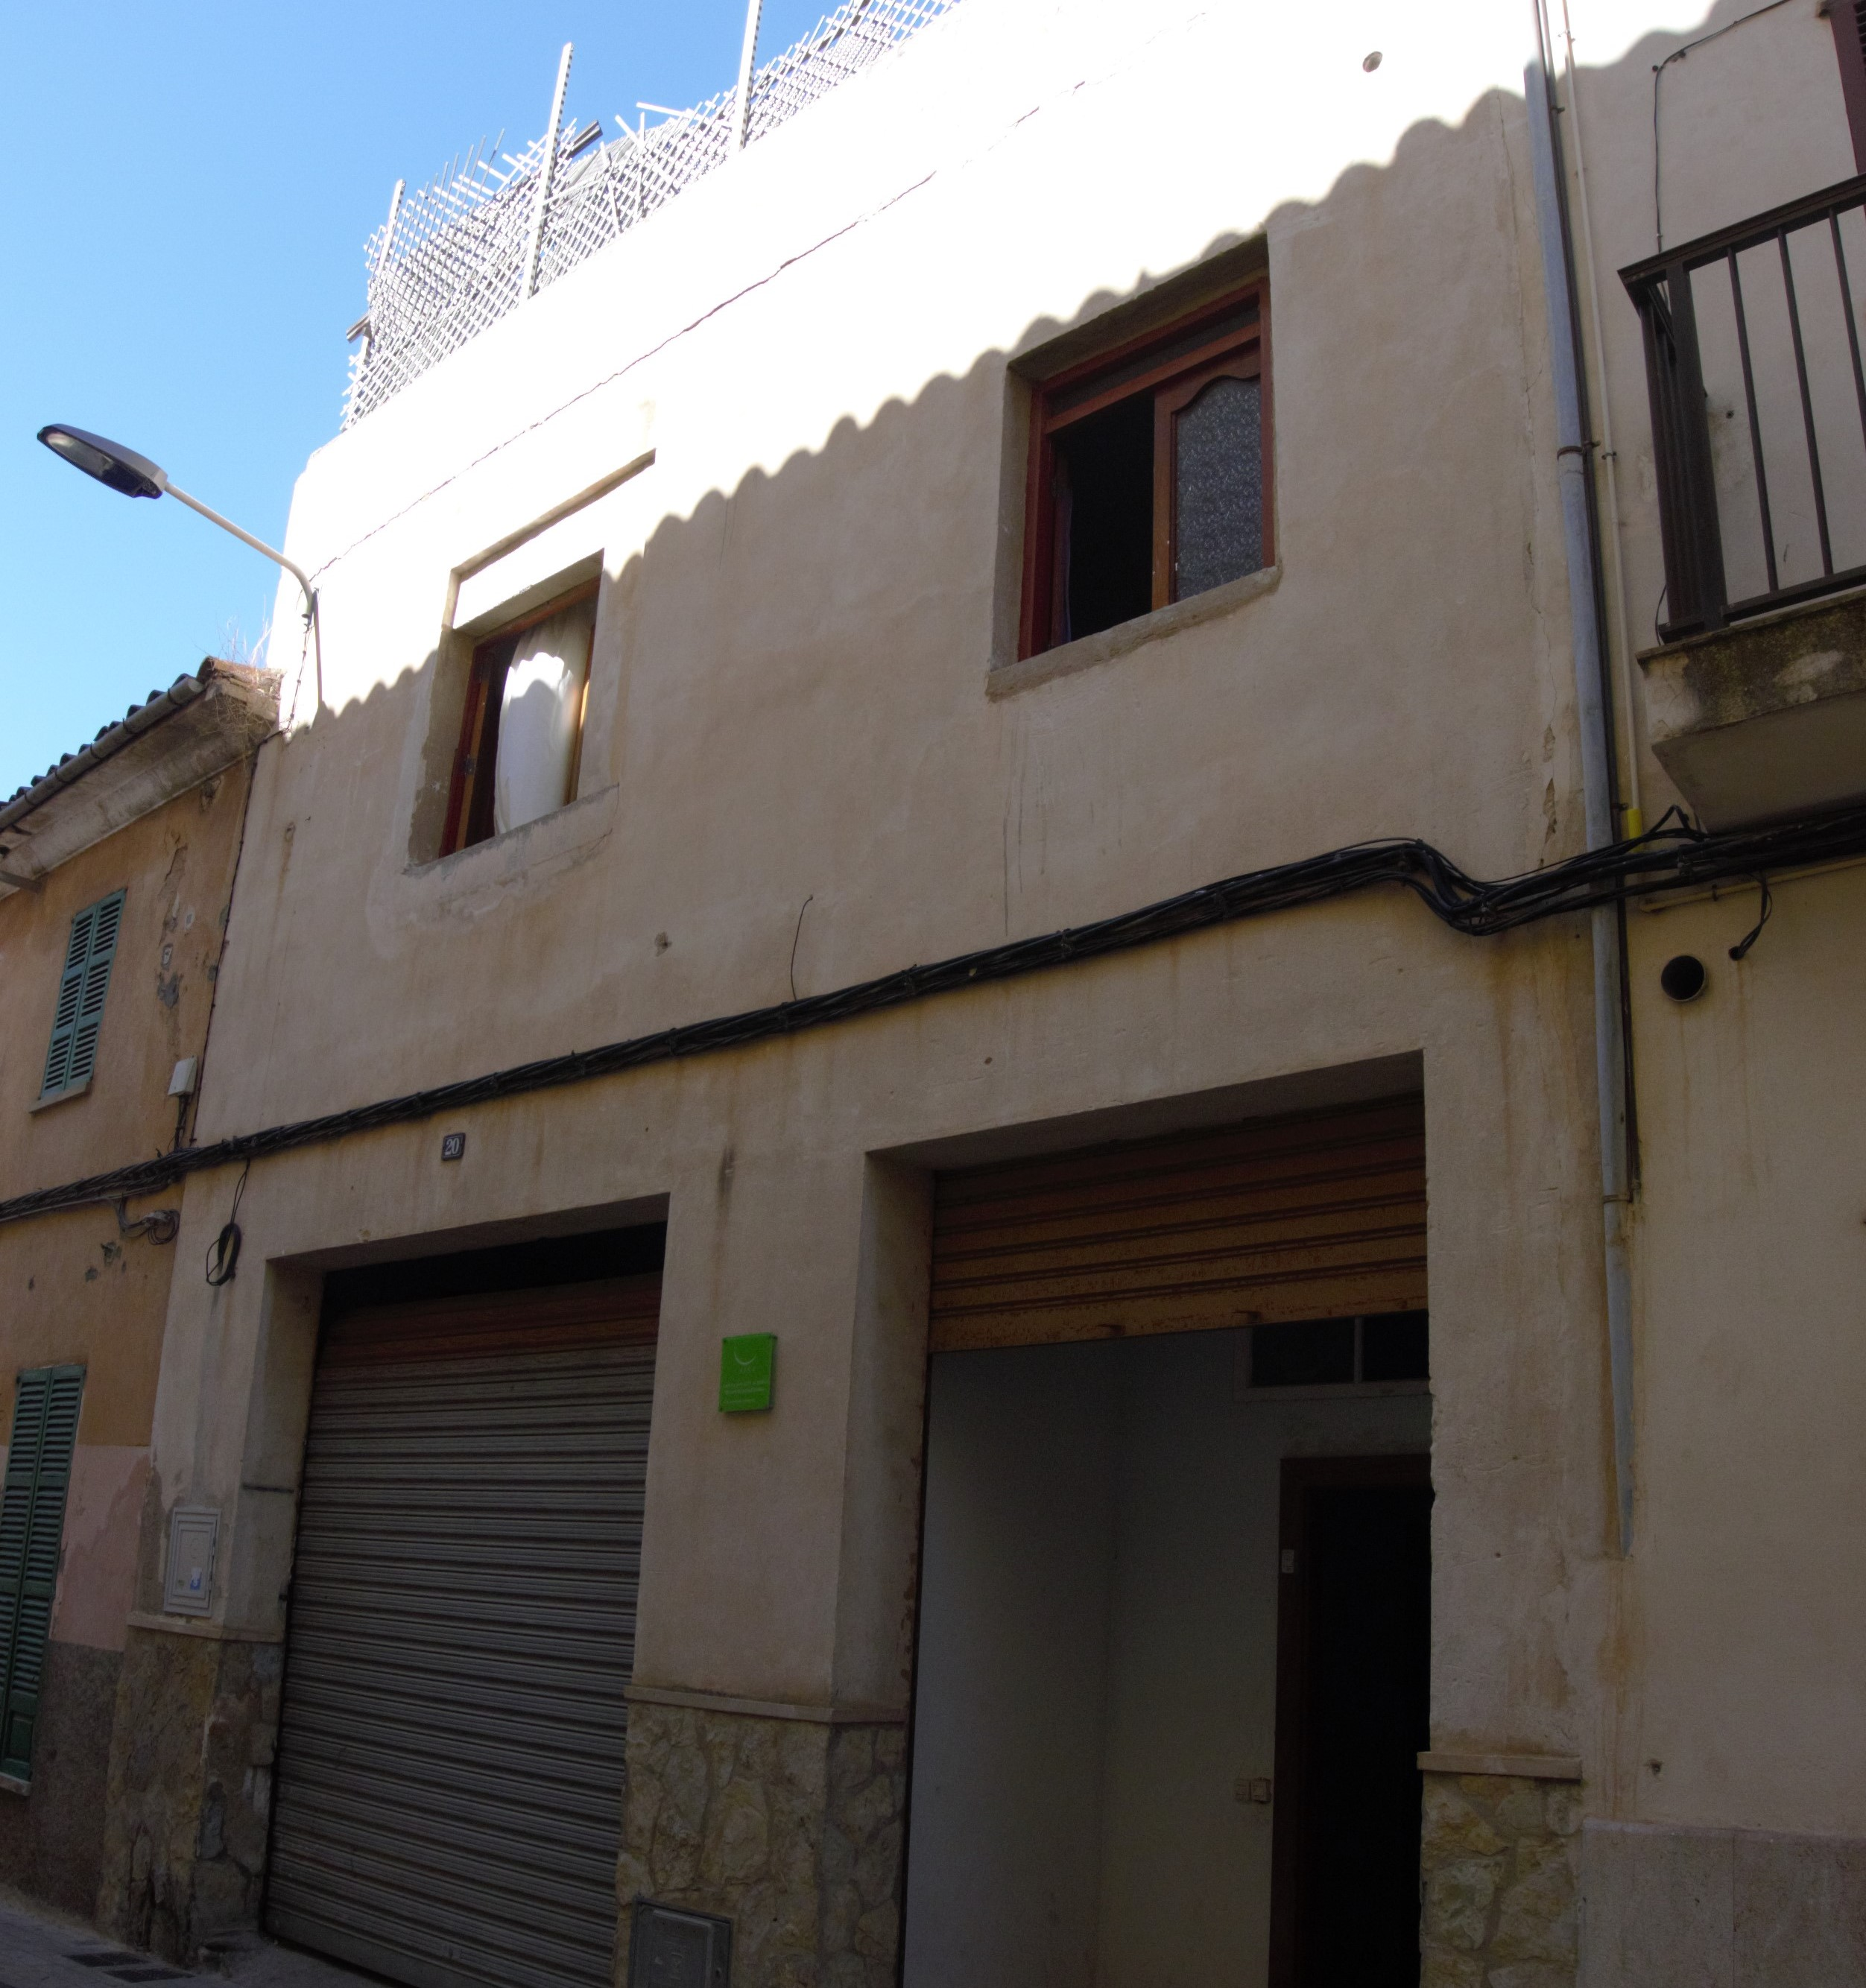 TOWNHOUSE IN THE CENTRE OF MANACOR TO REFURBISH